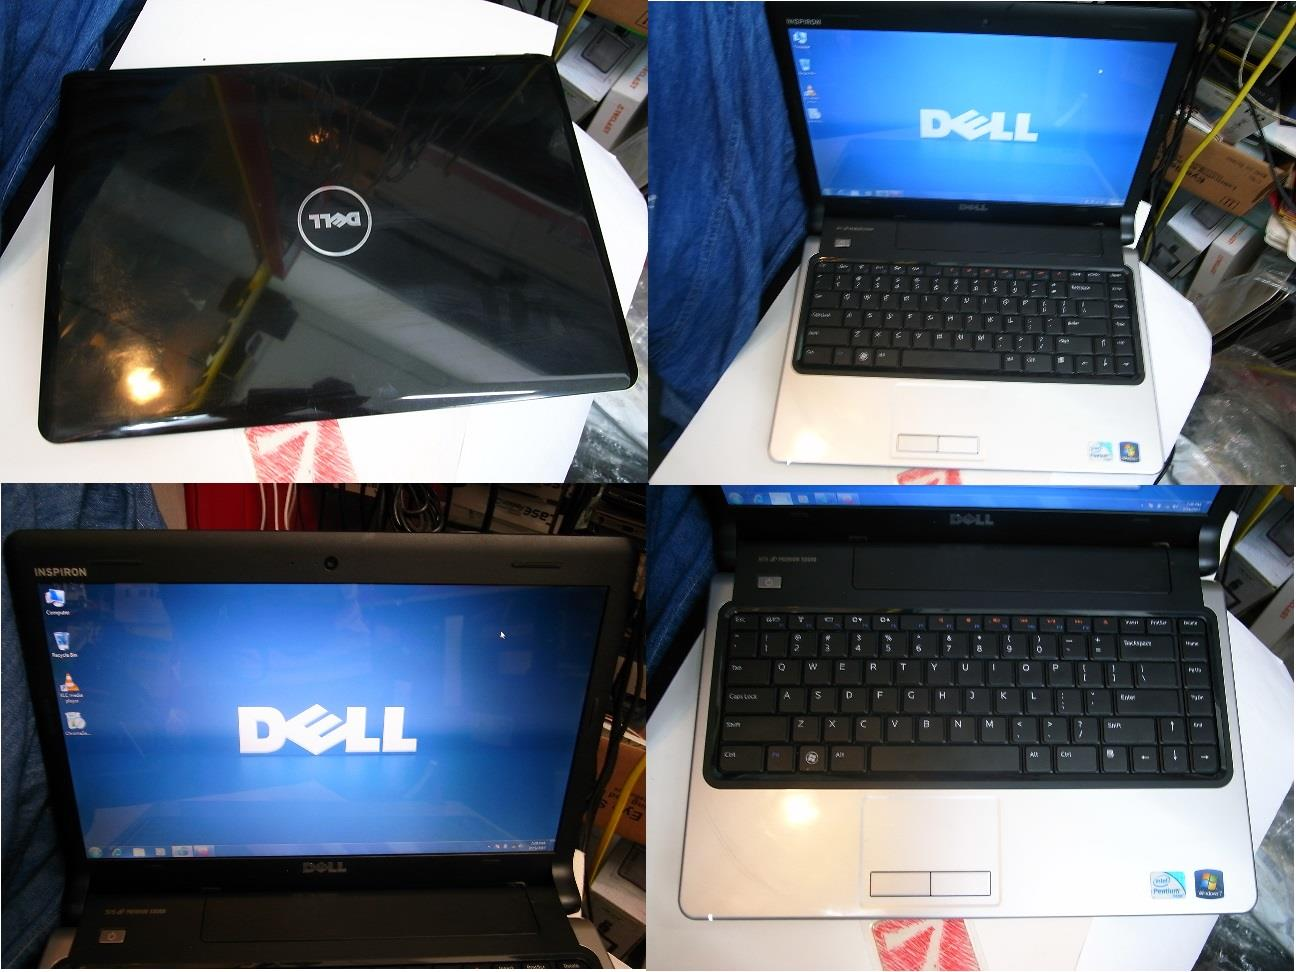 DeLL Inspiron 1470 14 Inch 4GB ATI Gpu Notebook Laptop Rm690